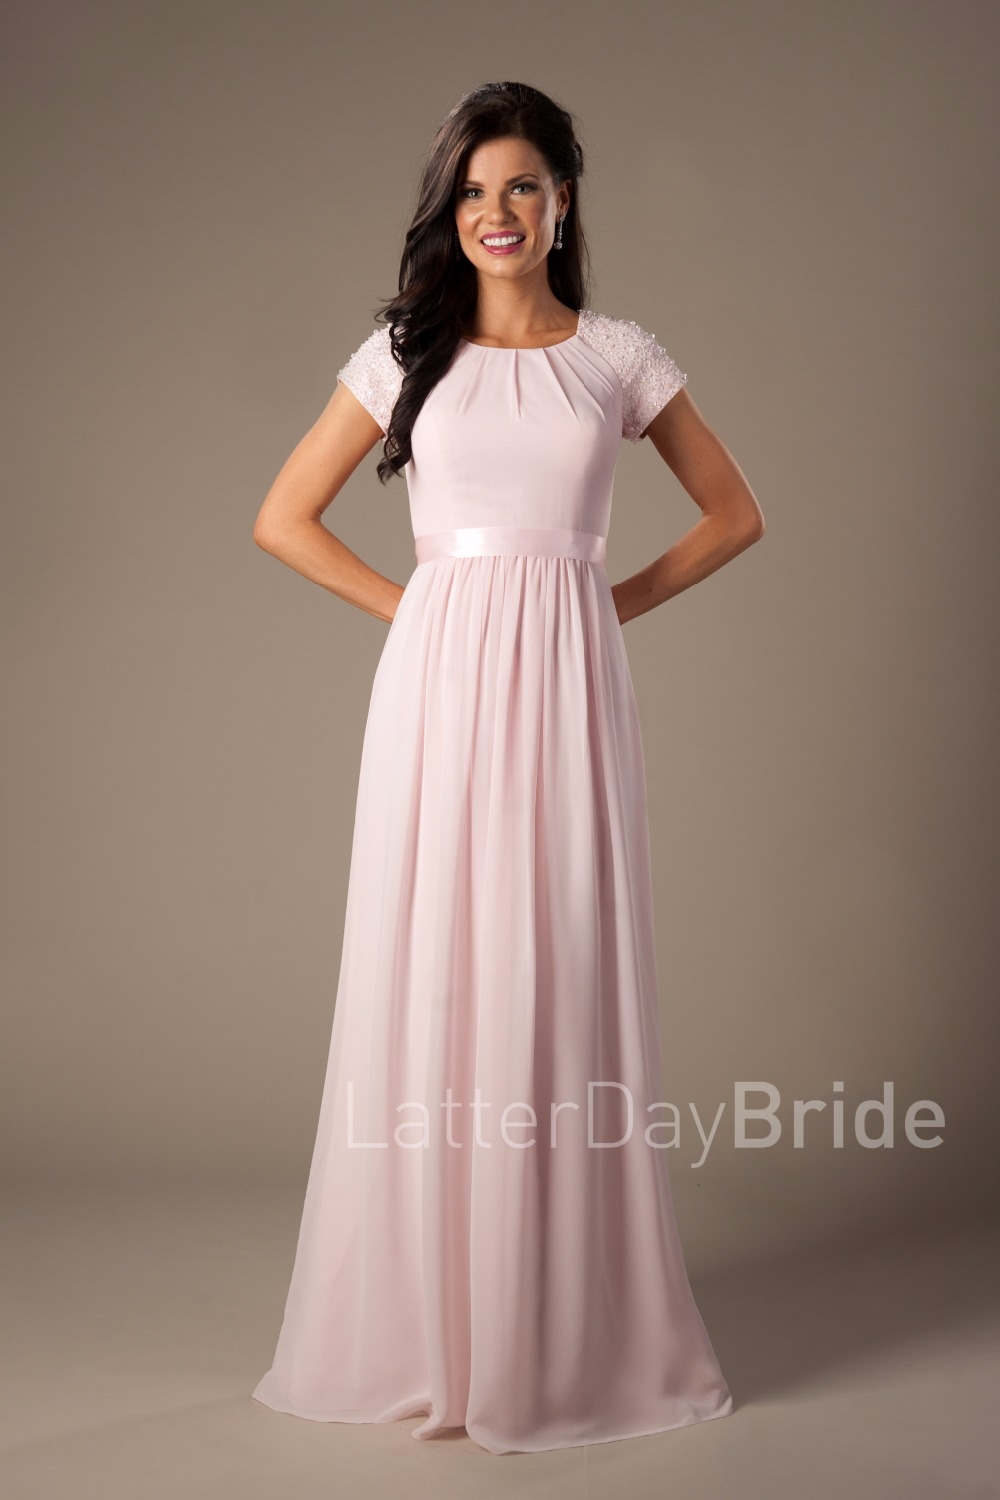 Beaded Pink Long Chiffon Modest   Bridesmaid     Dresses   With Cap Sleeves Elegant Evening Wedding Party   Dresses   A-line Floor Length